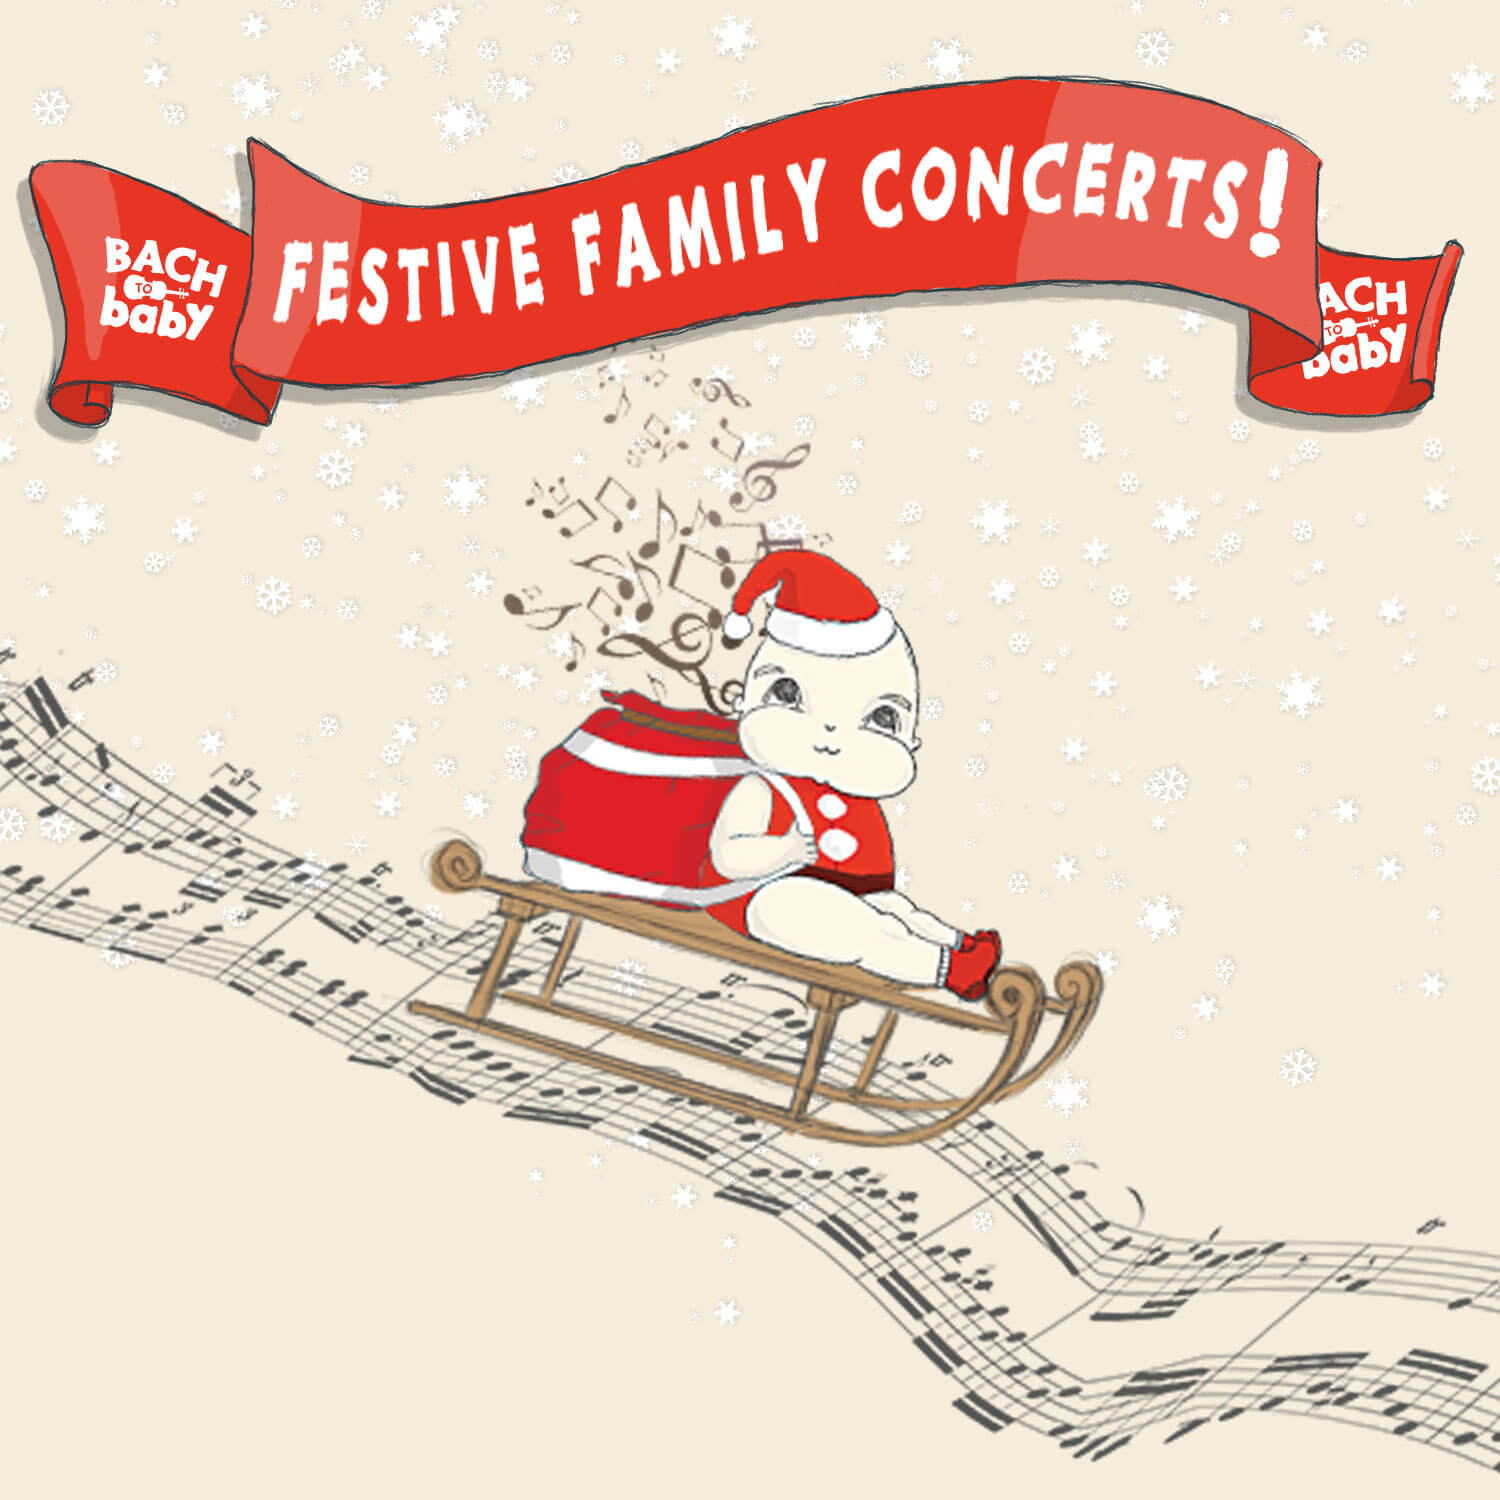 Bach to Baby - Festive Family Concert